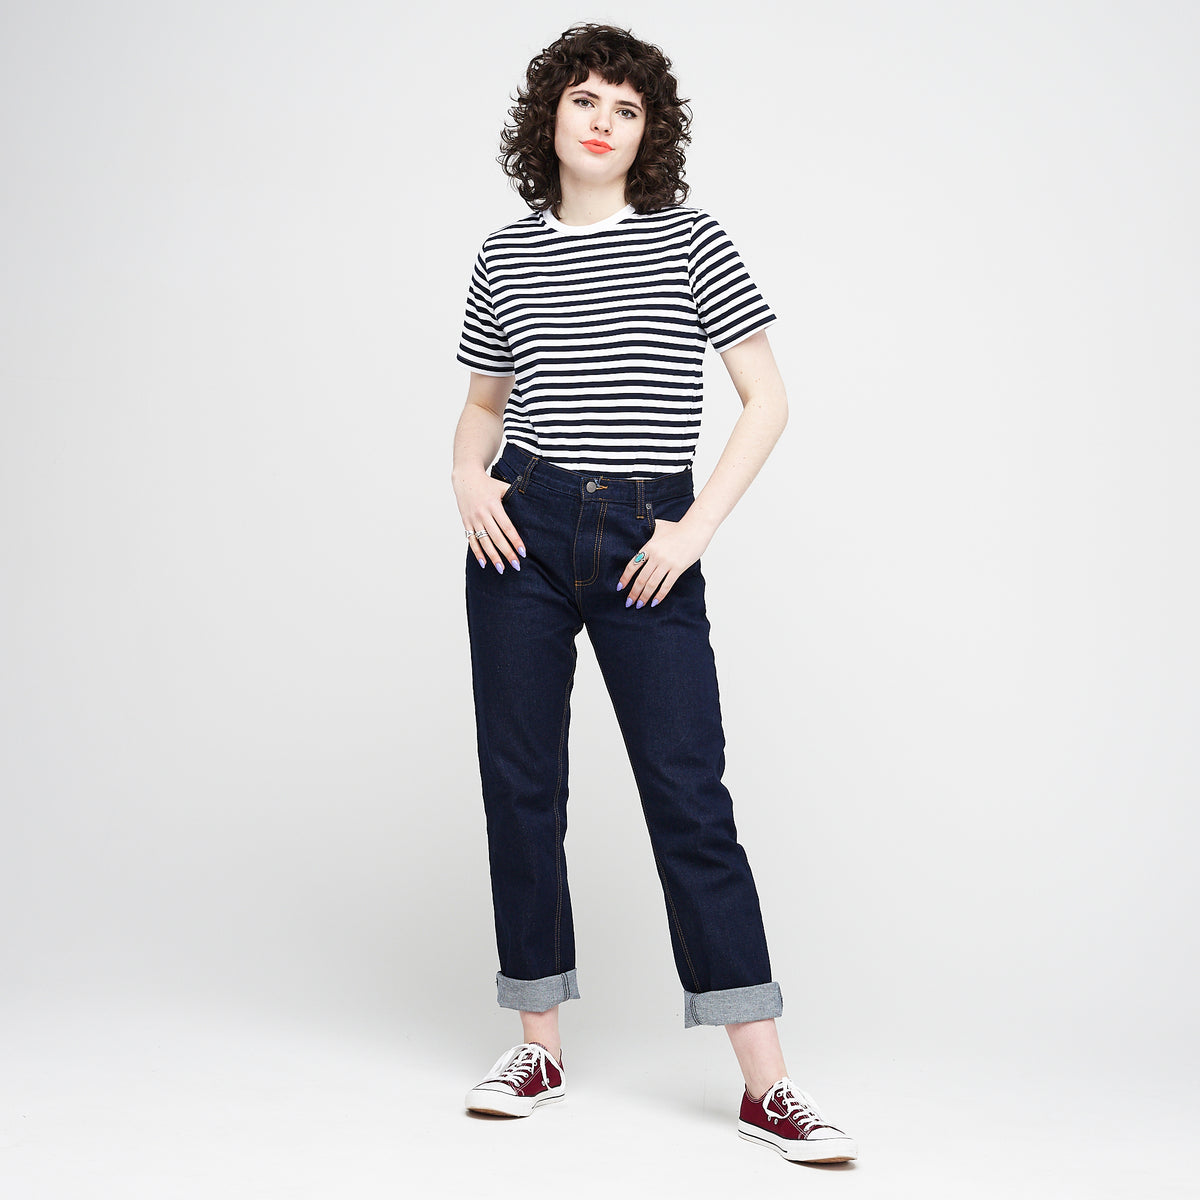 Women's Short Sleeve Stripe T-Shirt White/Navy - Community Clothing